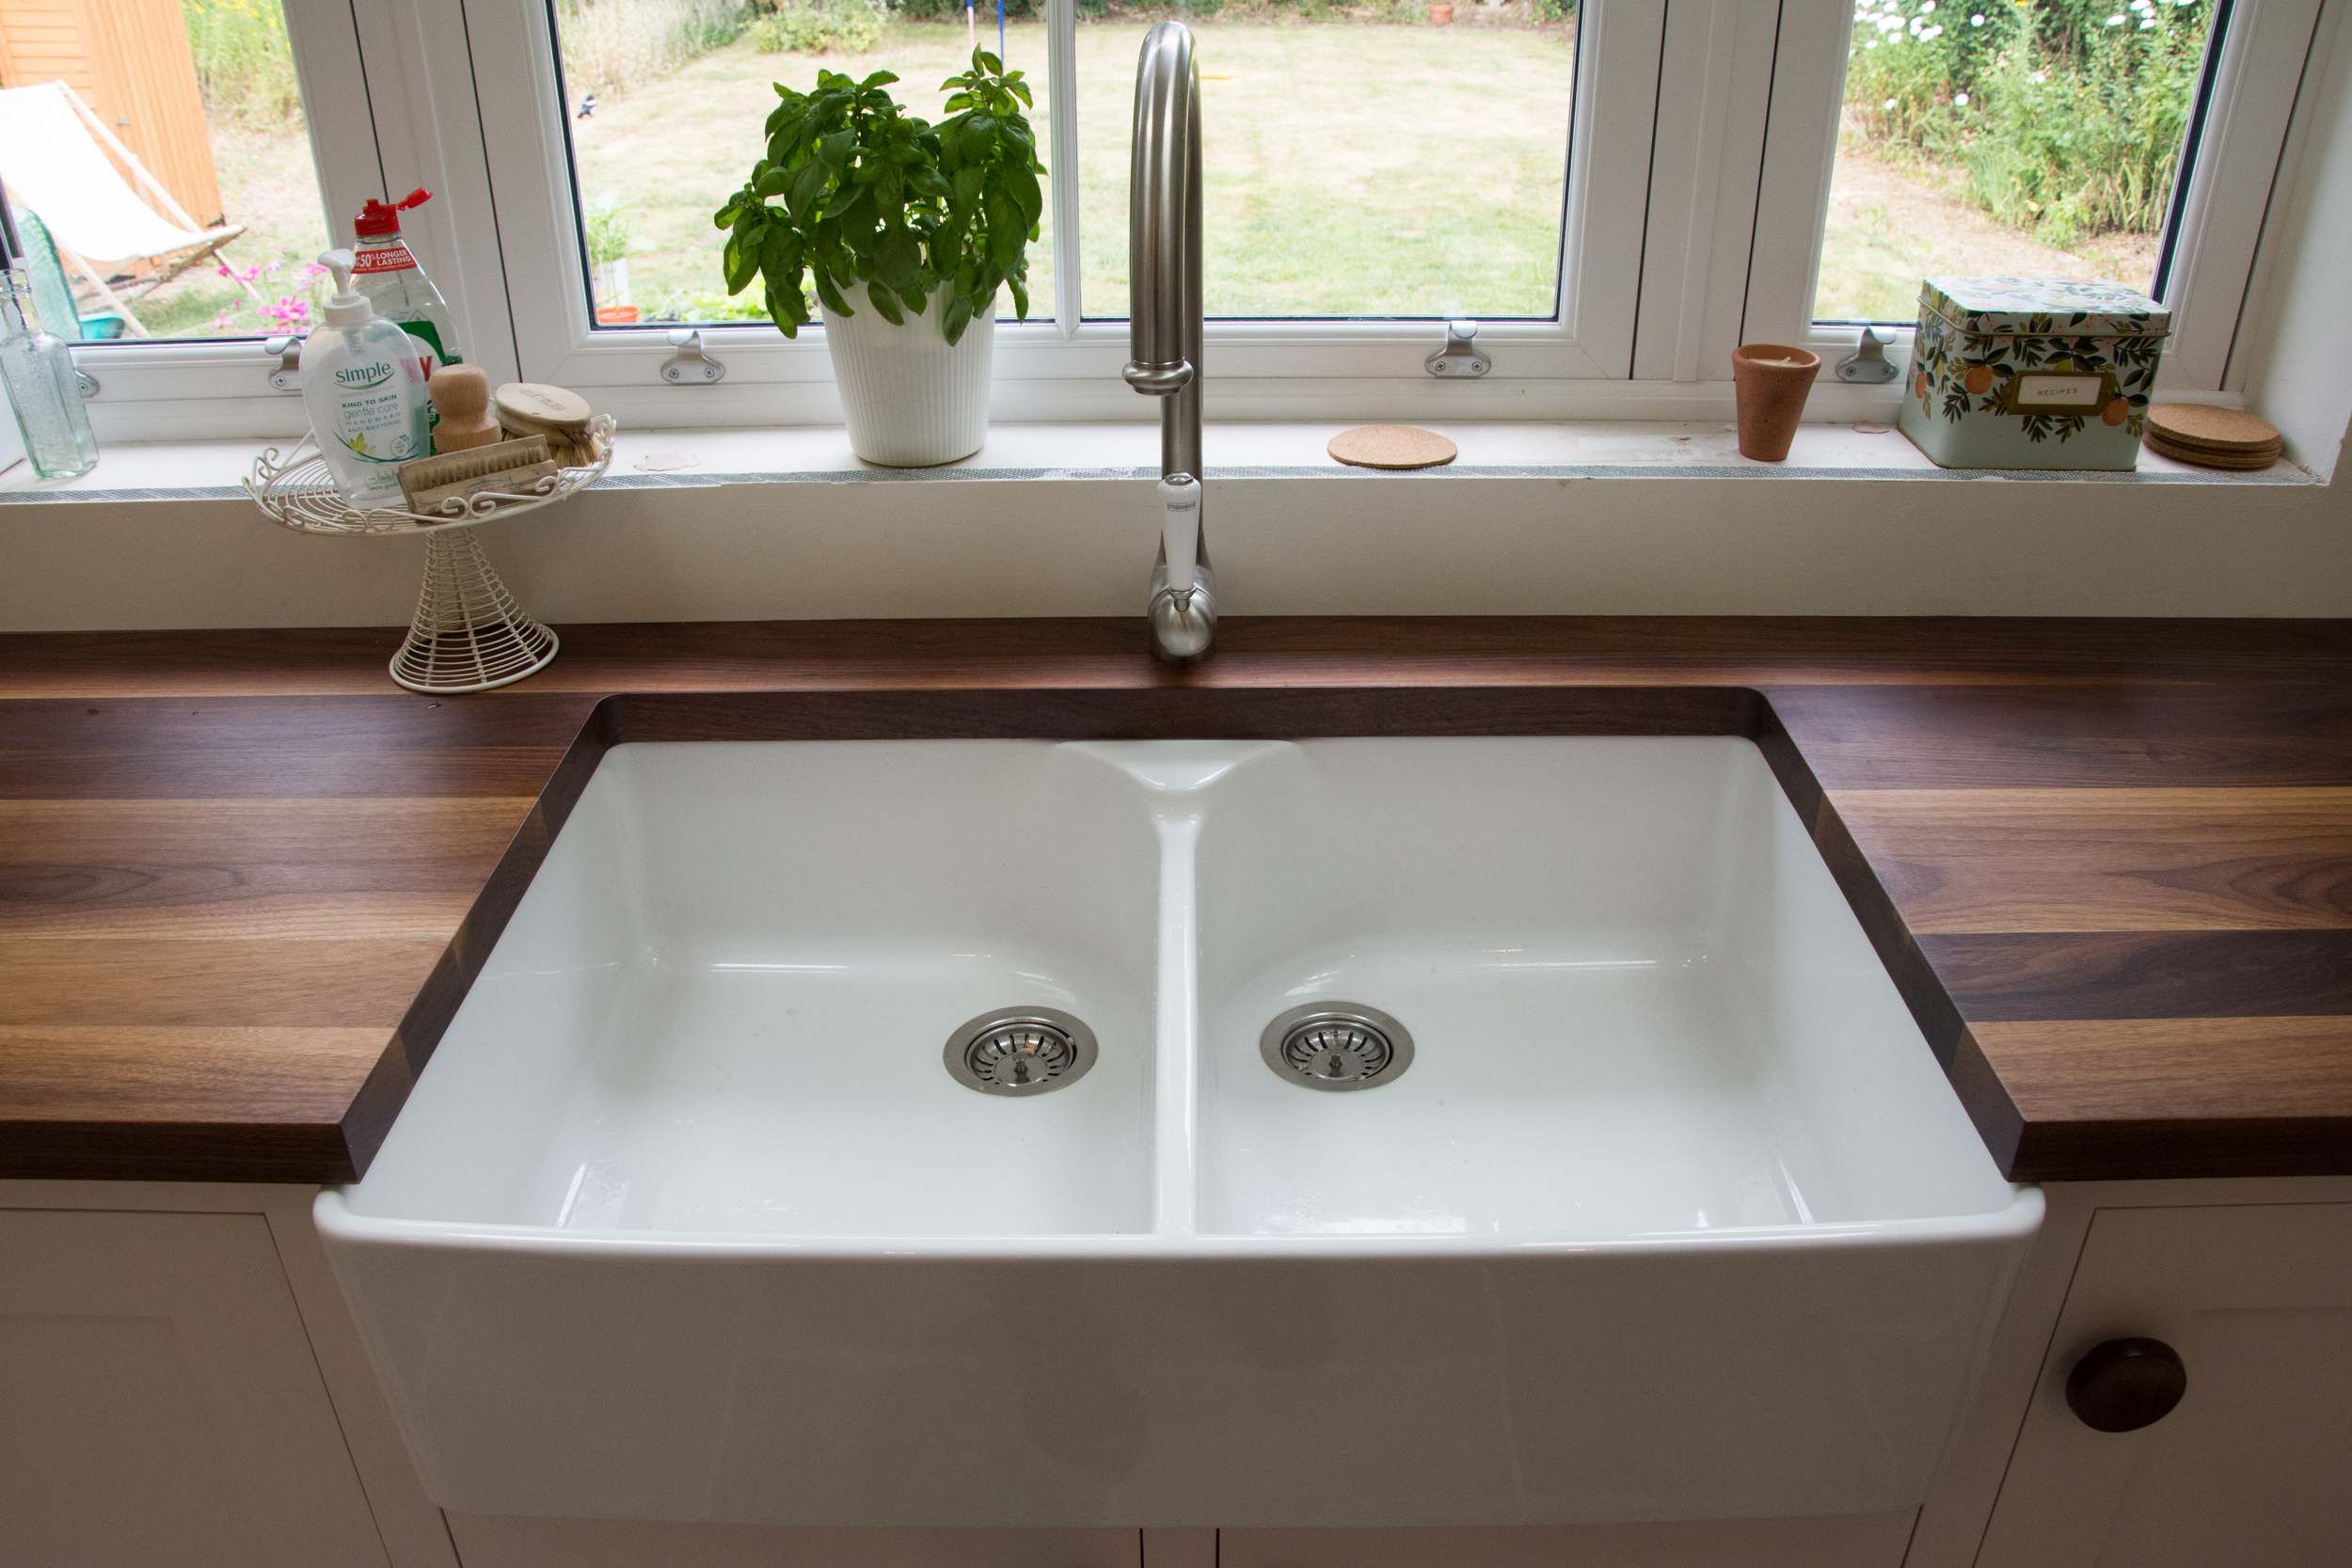 Butler sink in bespoke kitchen, Chestfield